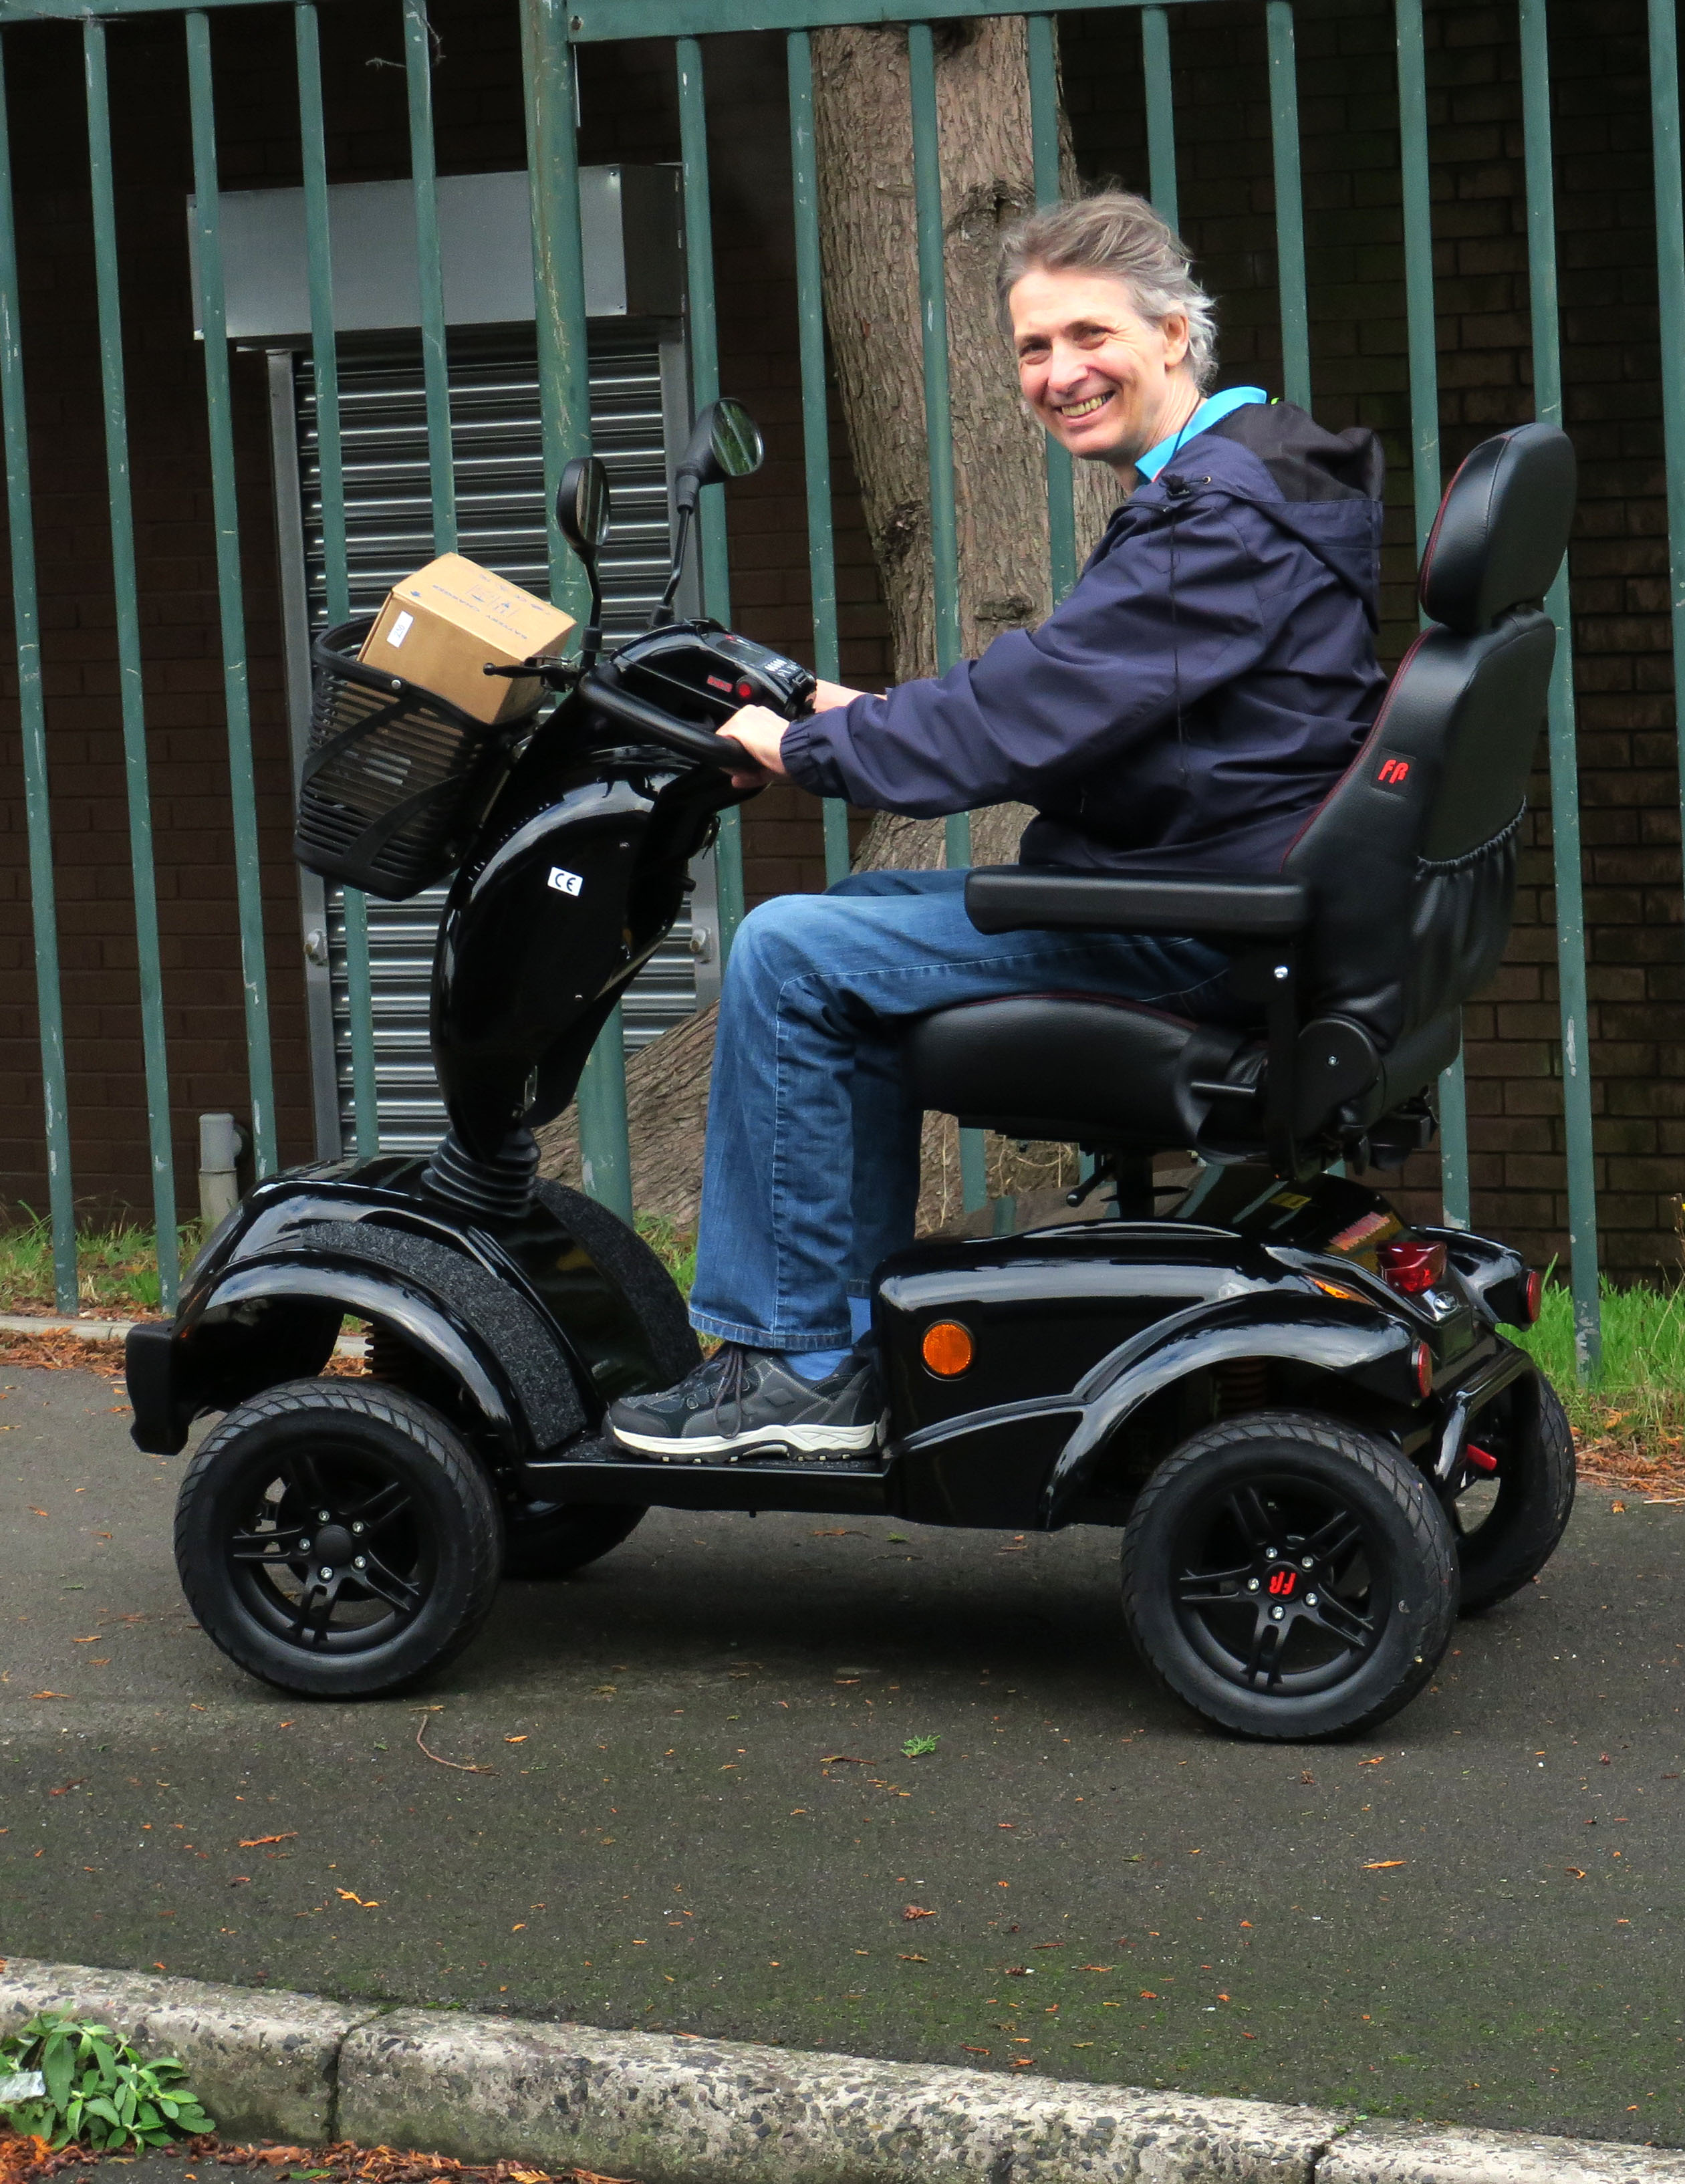 Freerider Landranger XL8, weekly rental £32.89